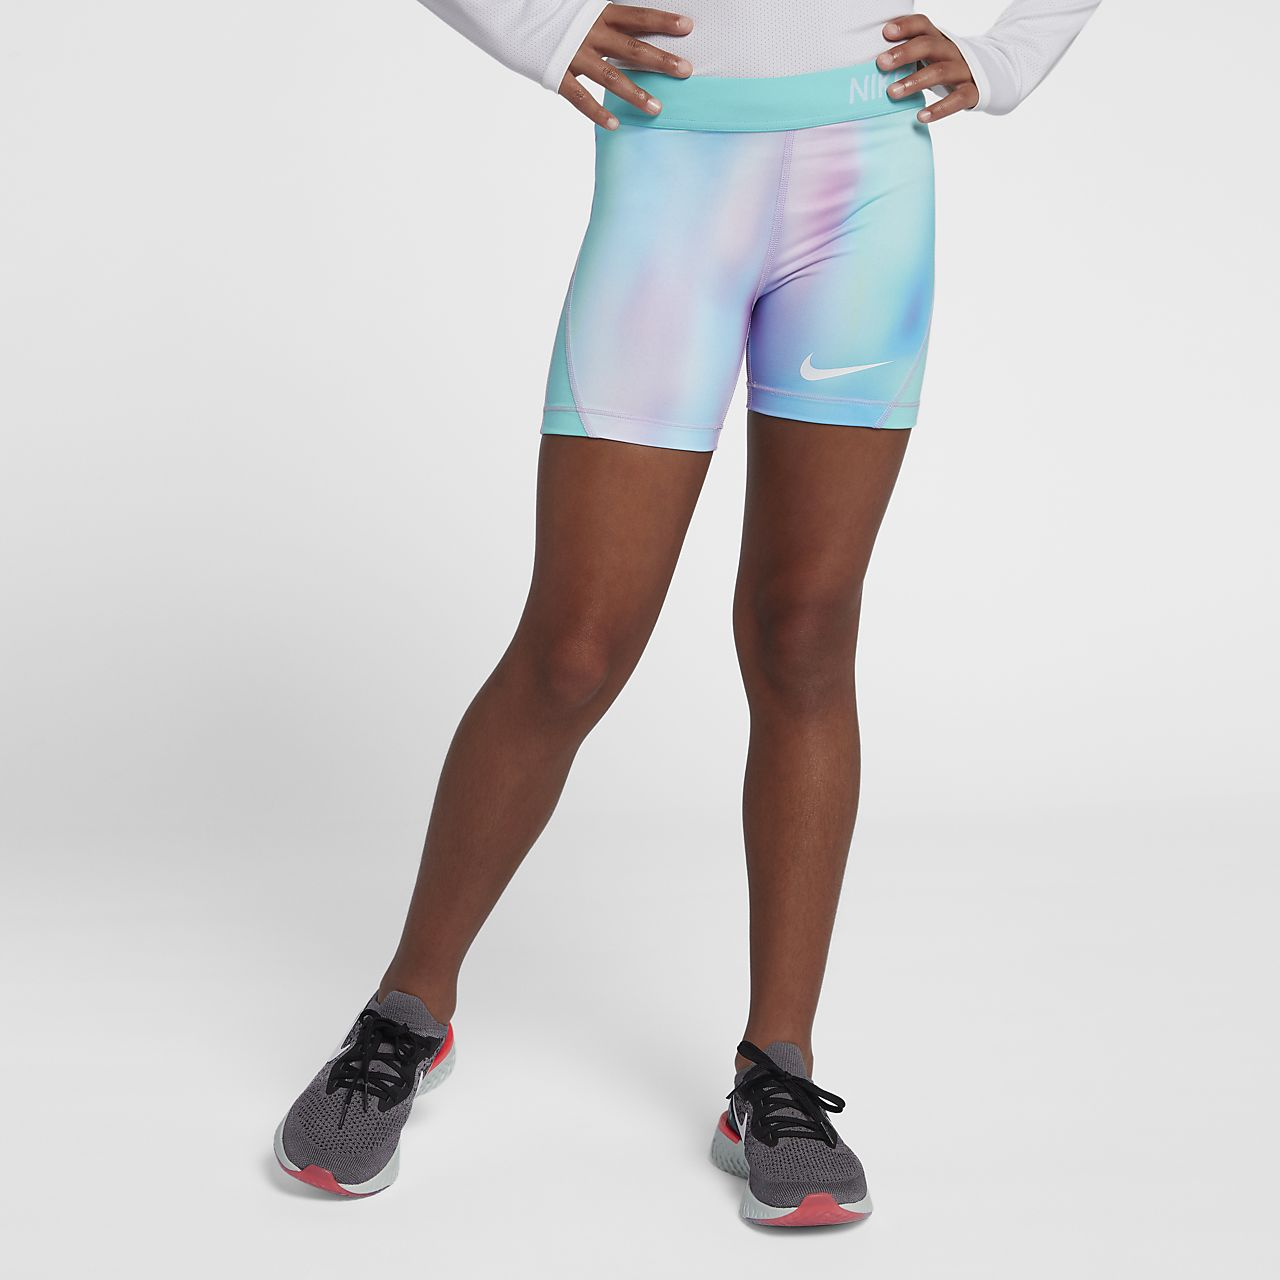 9d8a54cacfa3 Nike Pro Older Kids' (Girls') Printed Training Boyshorts. Nike.com AU